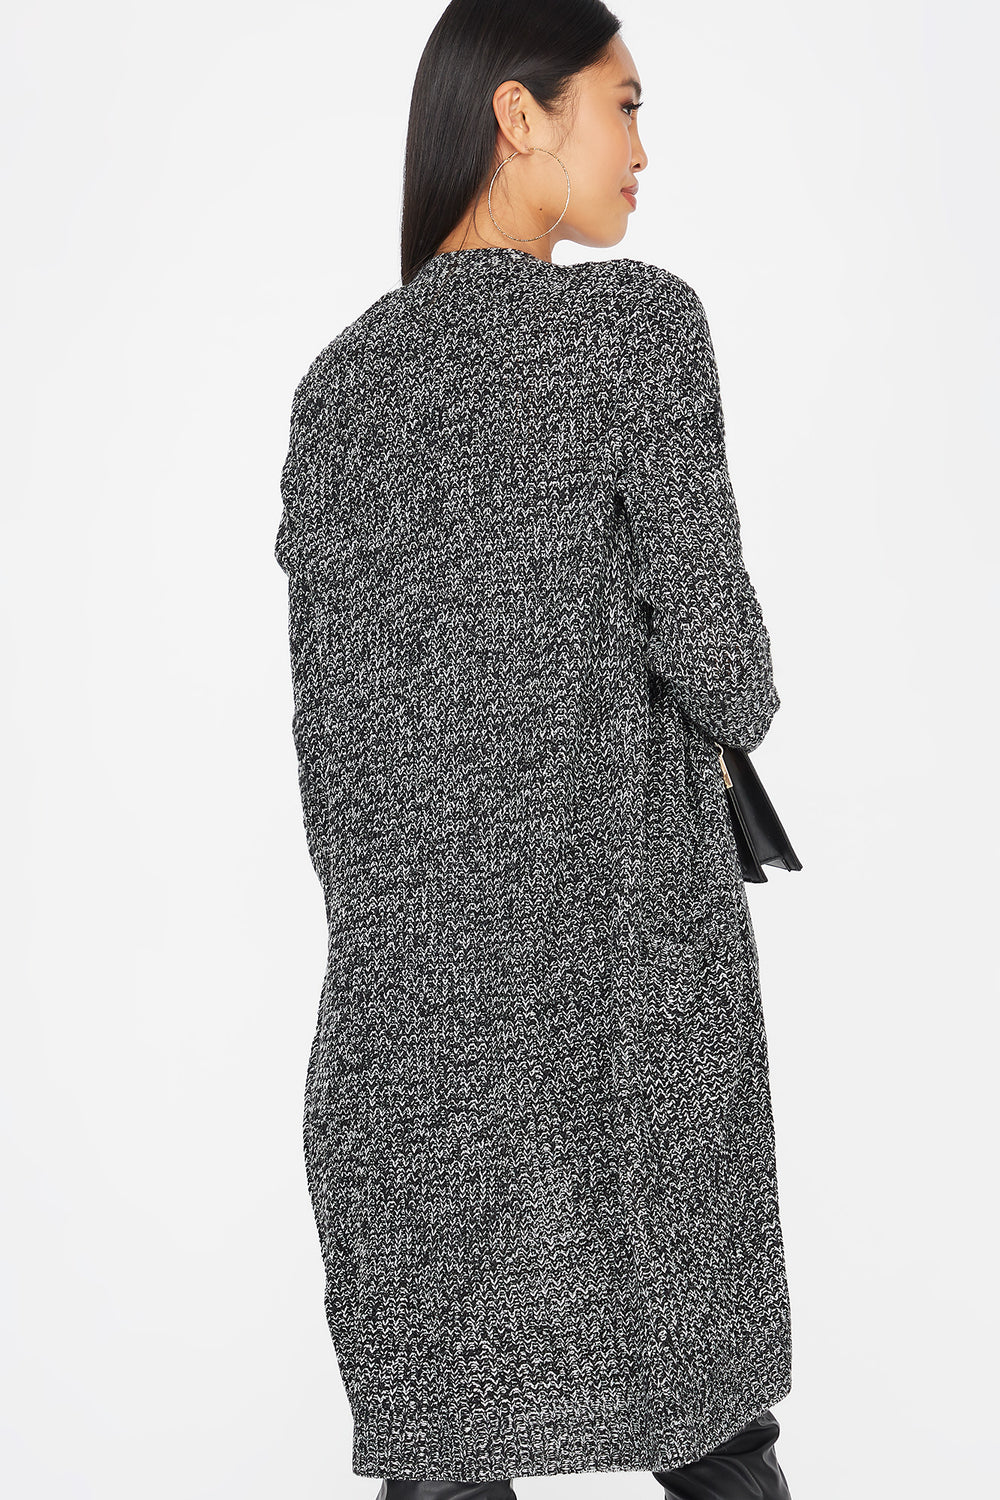 Knit Open Front Longline Pocket Cardigan Black with White